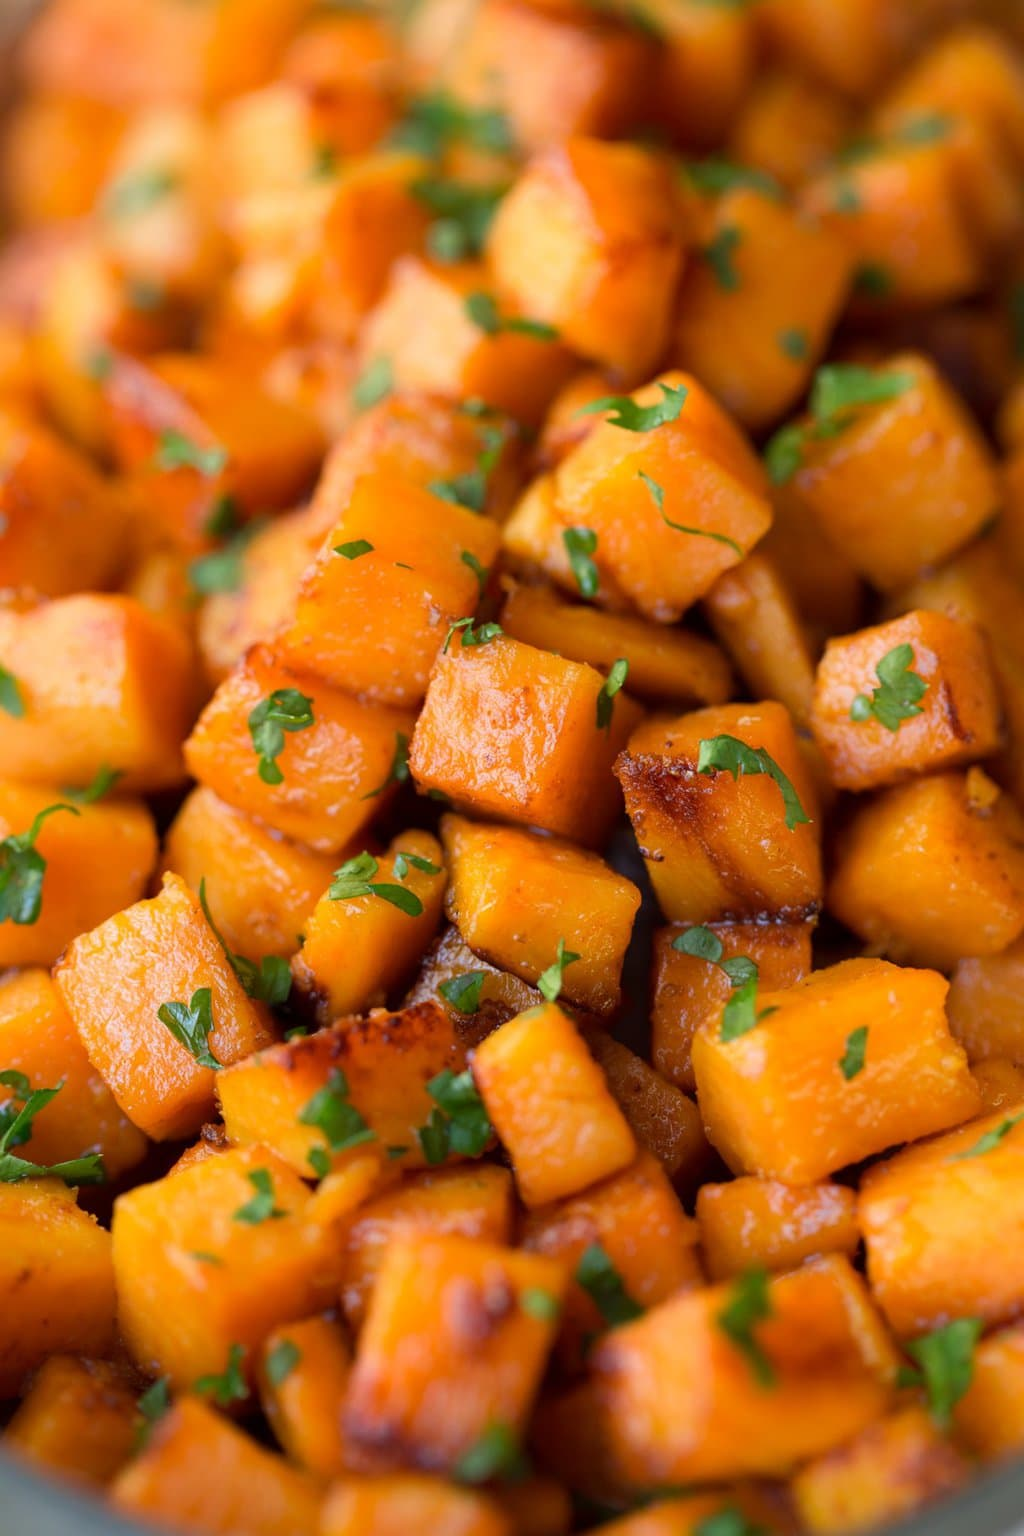 Extreme closeup photo of Caramelized Sweet Potatoes.